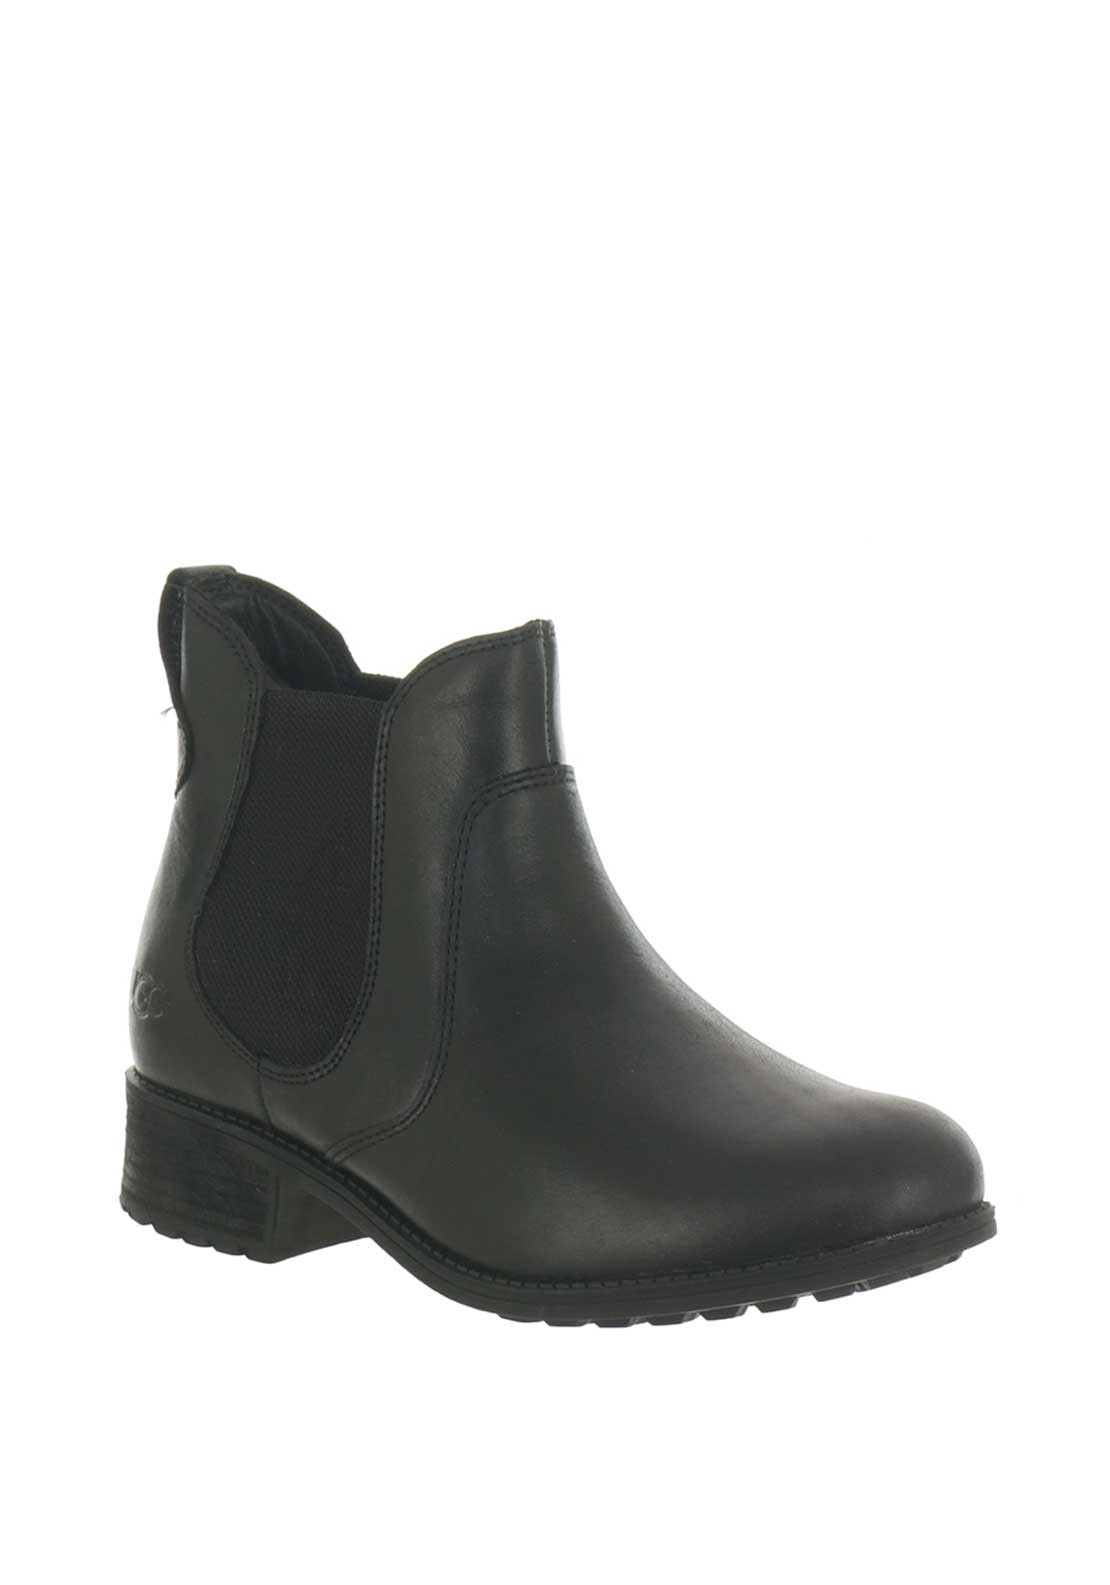 68b6cb490ef UGG Australia Womens Bonham Leather Boots, Black